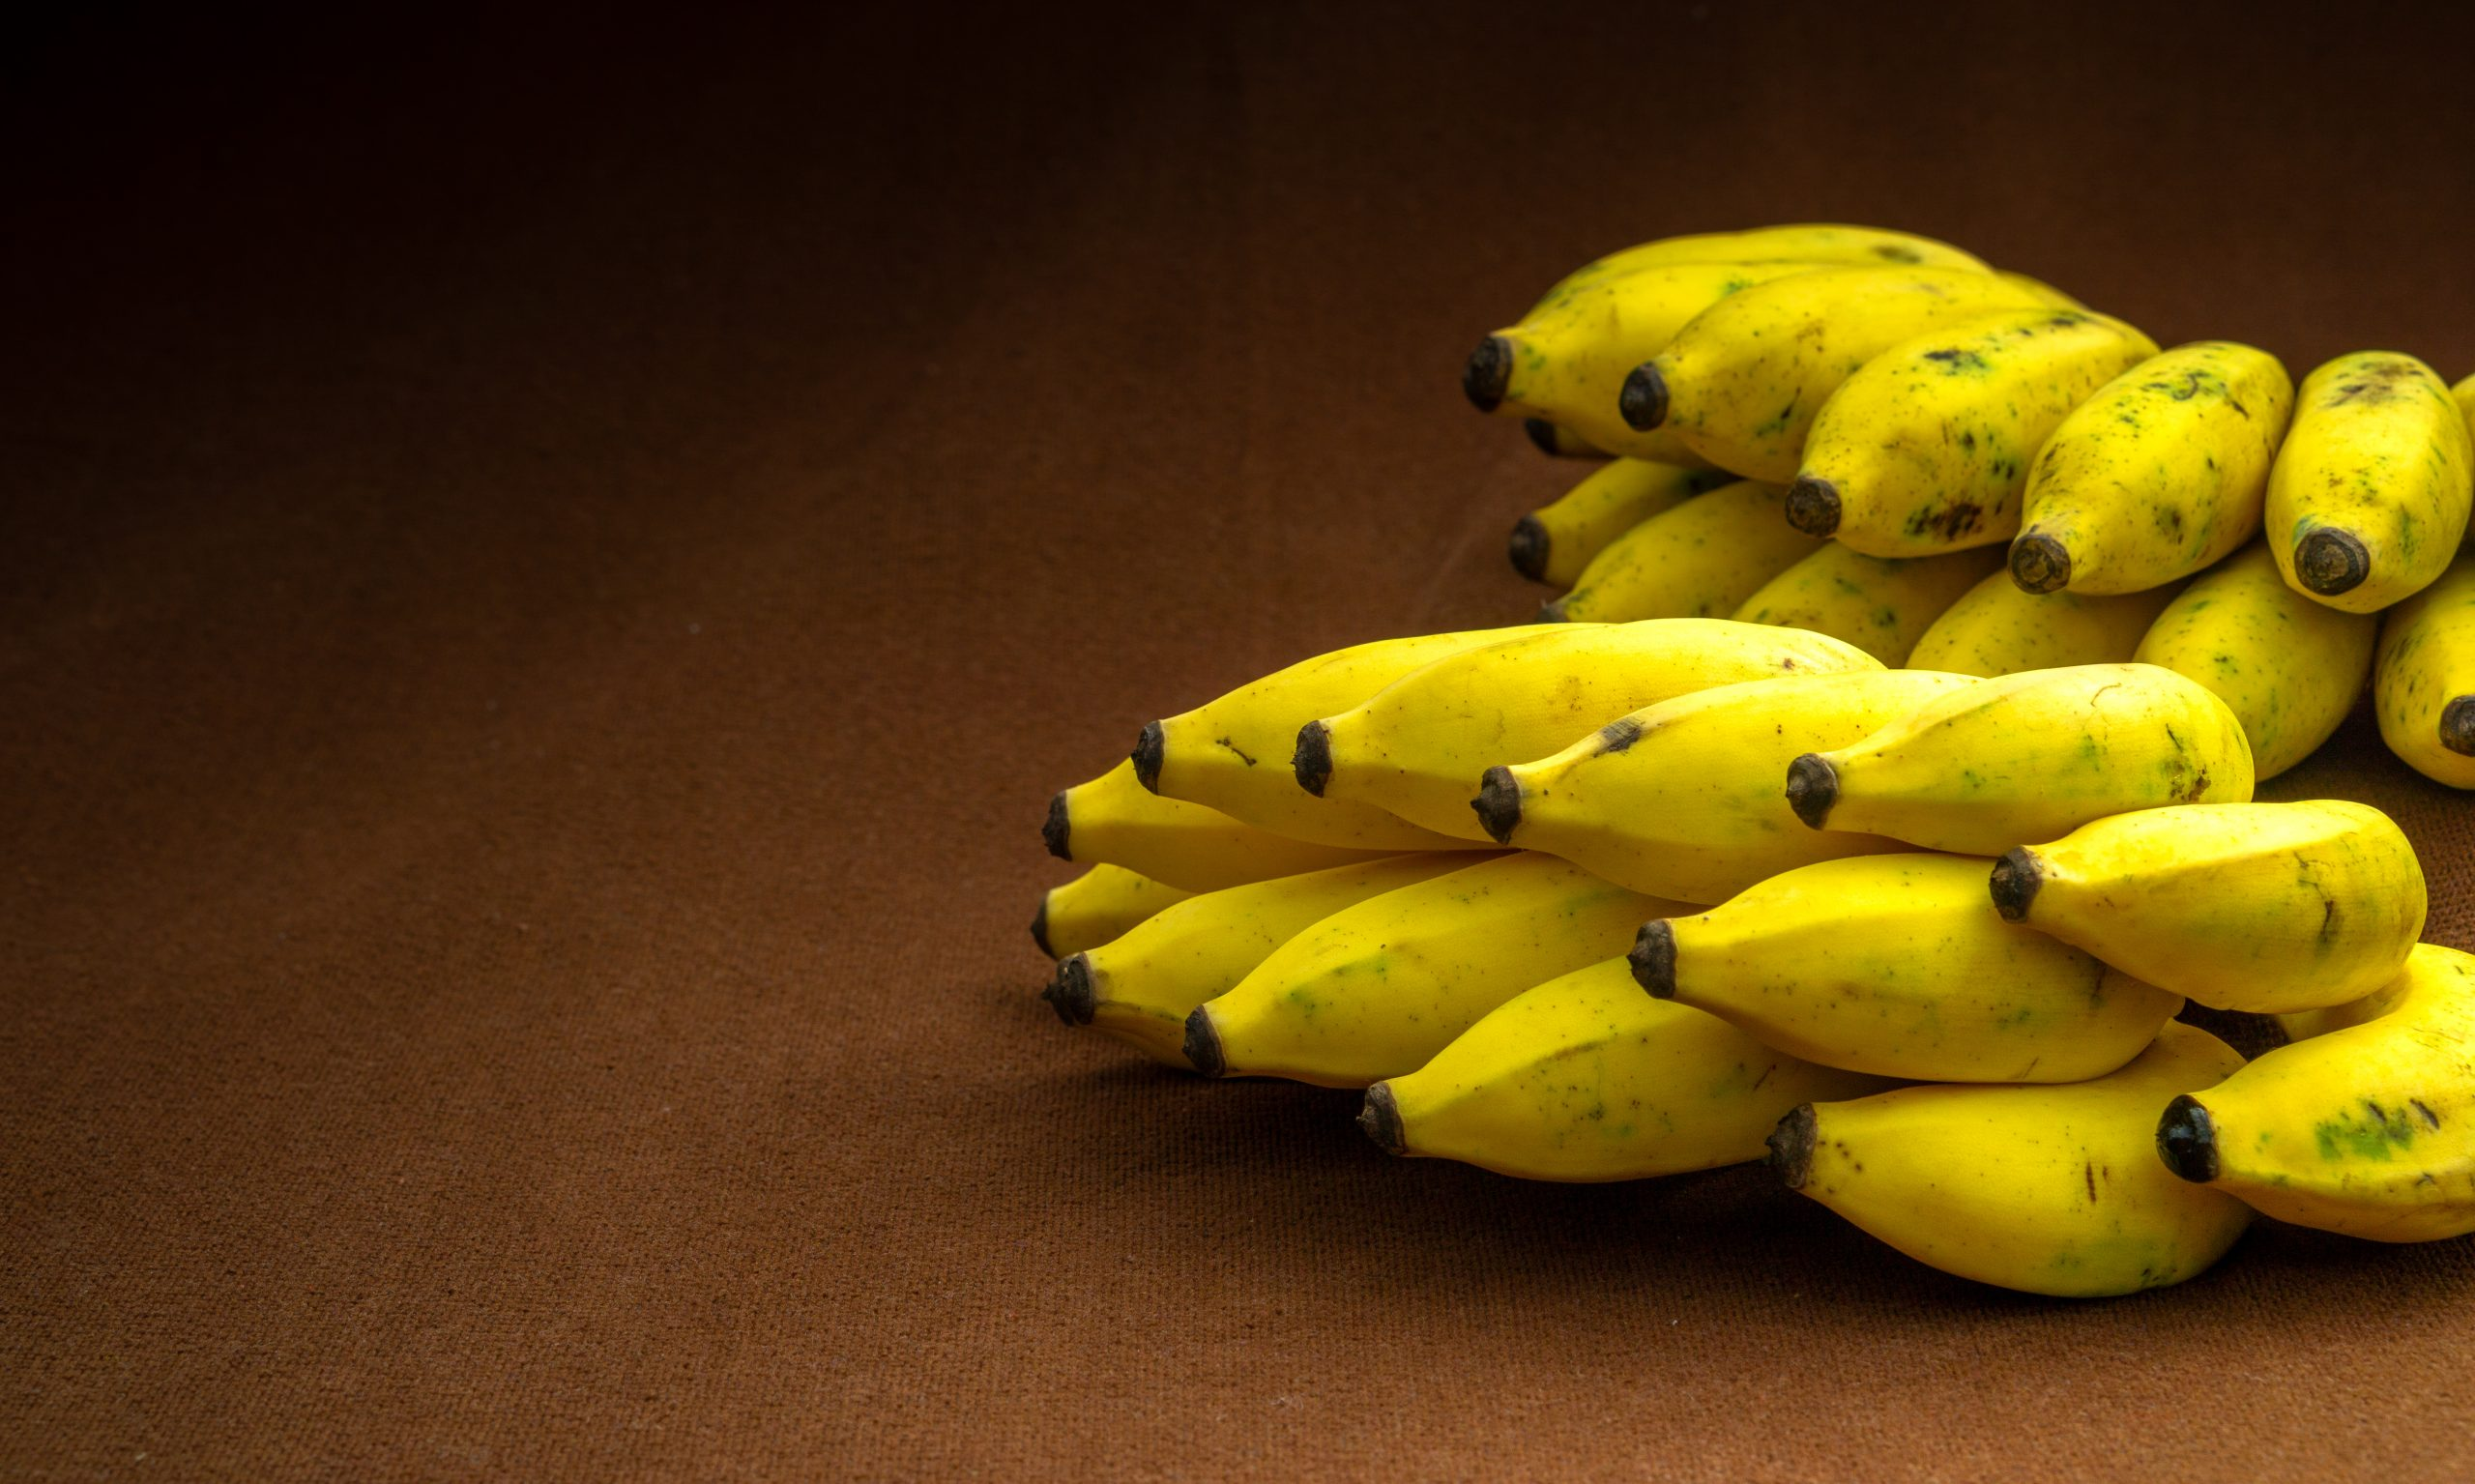 Bunch of bananas on a table.